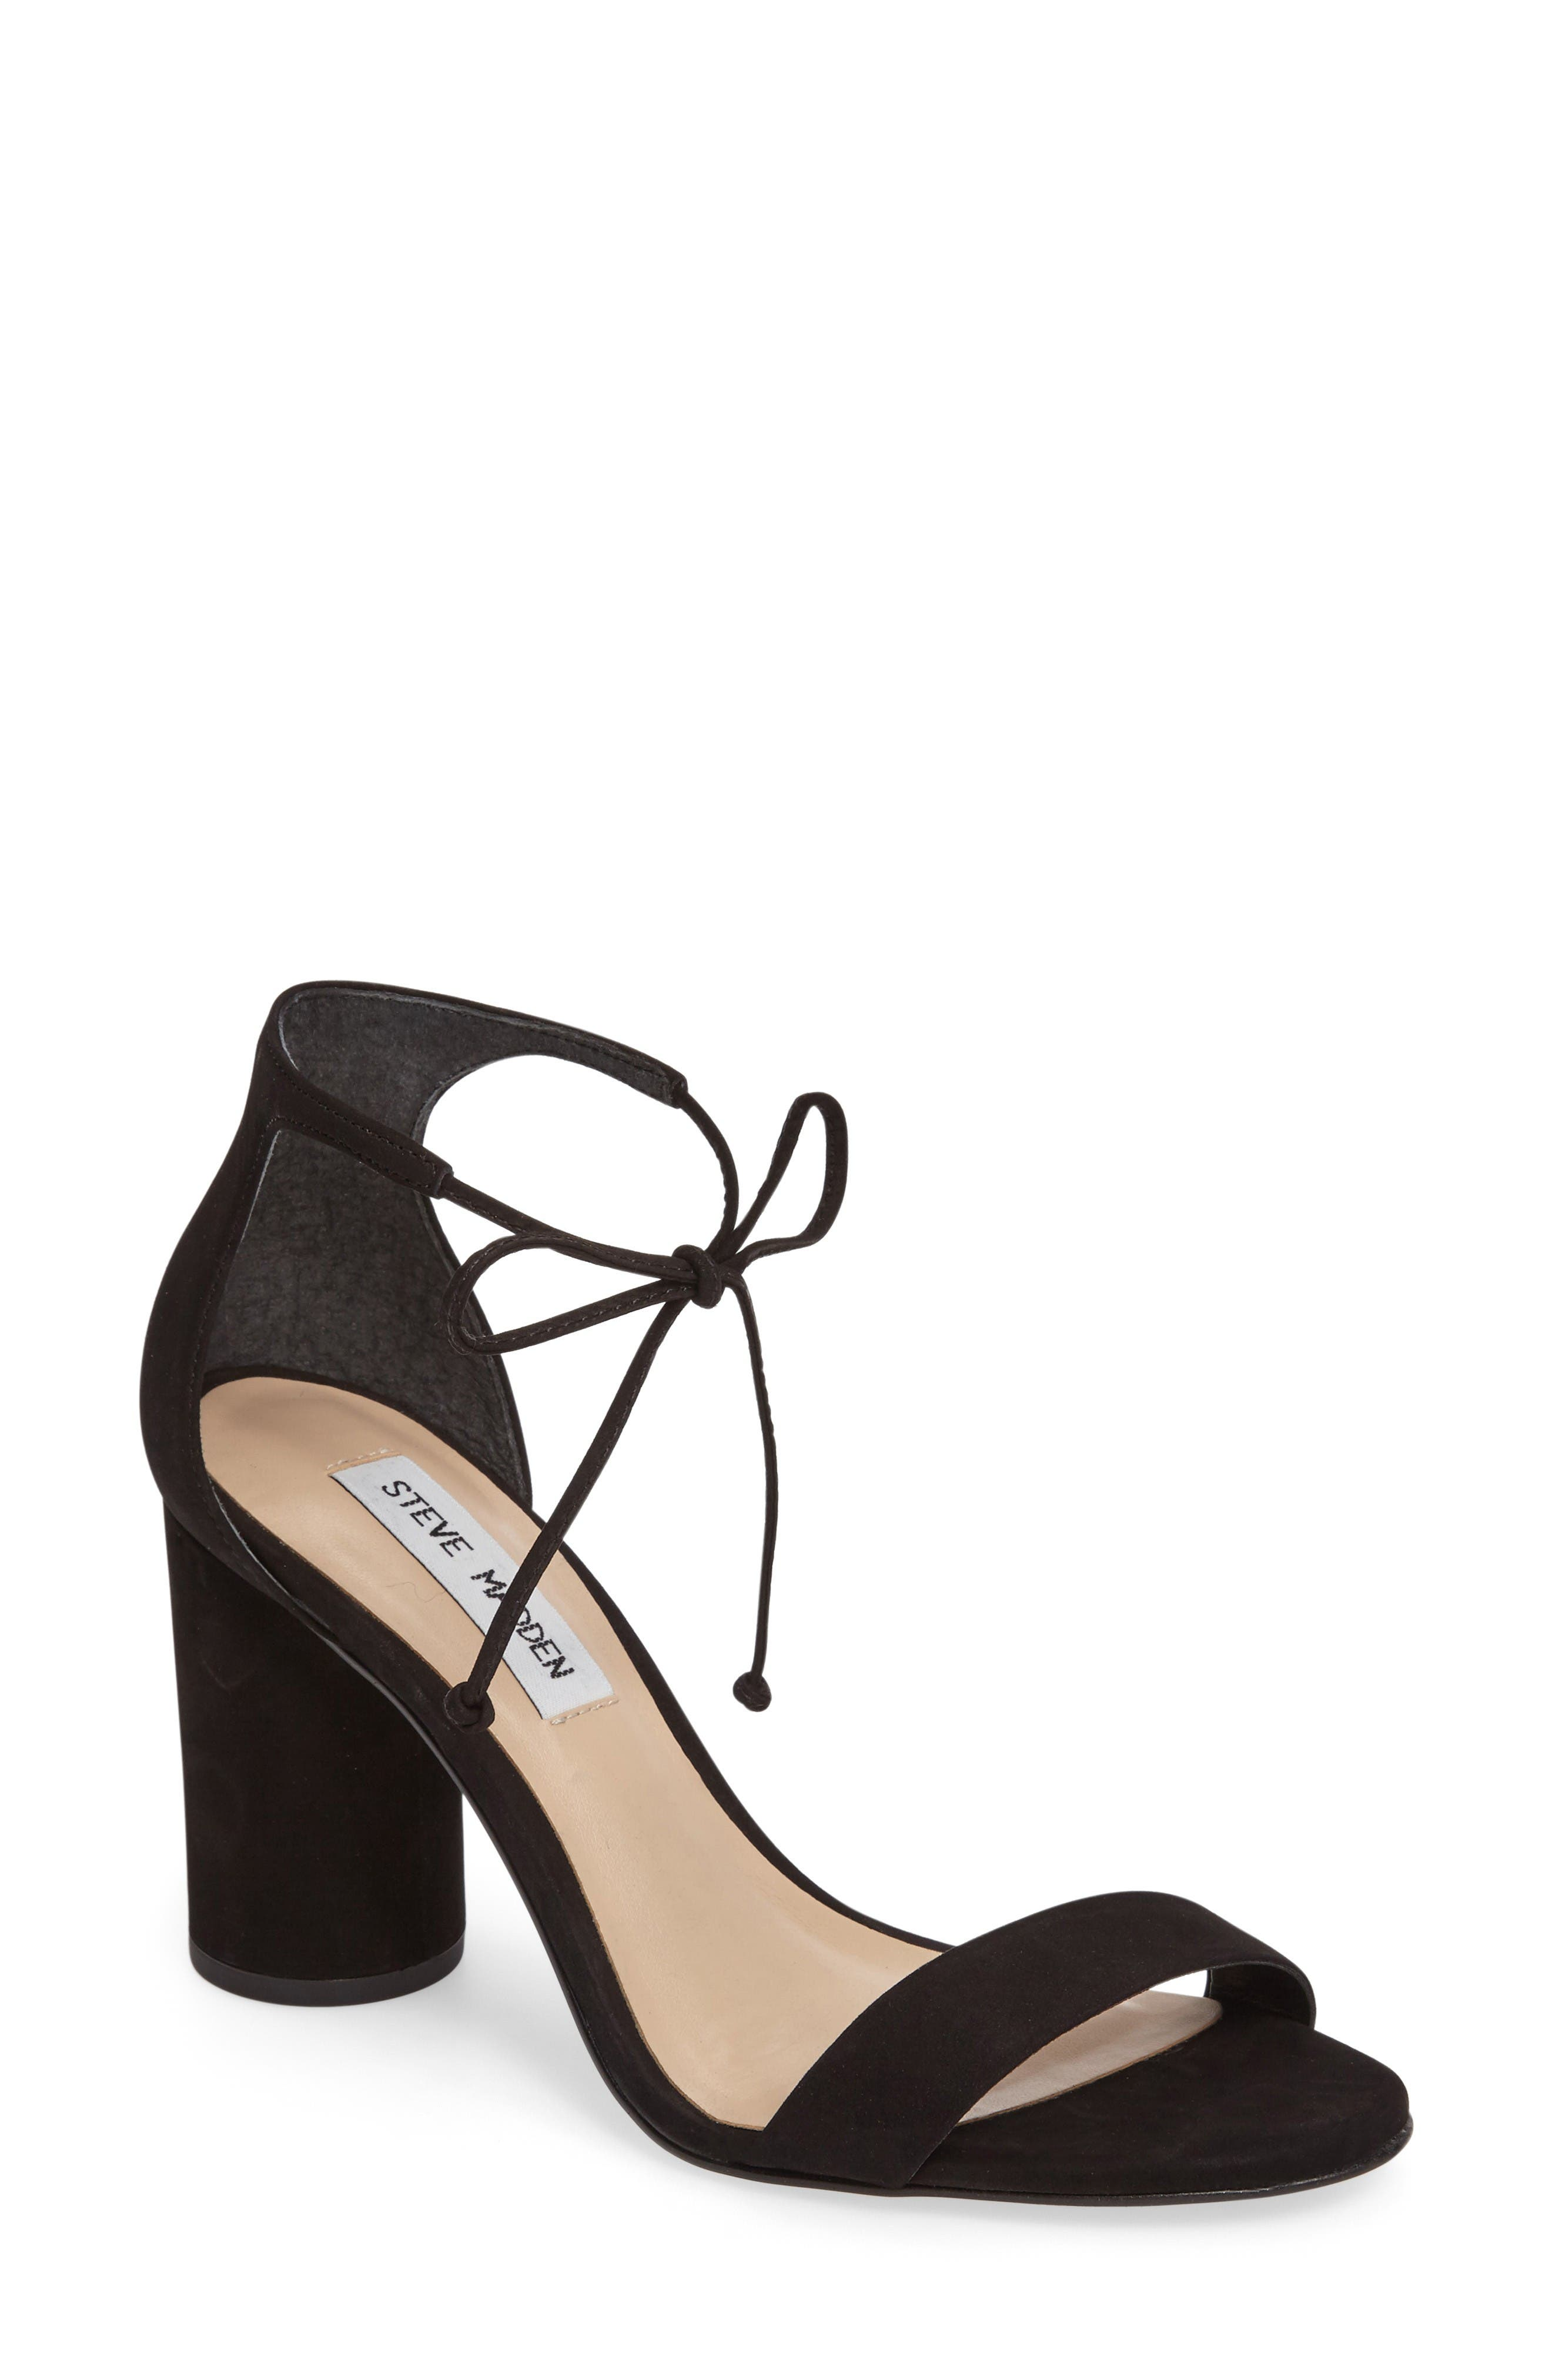 Alternate Image 1 Selected - Steve Madden Shays Lace-Up Sandal (Women)